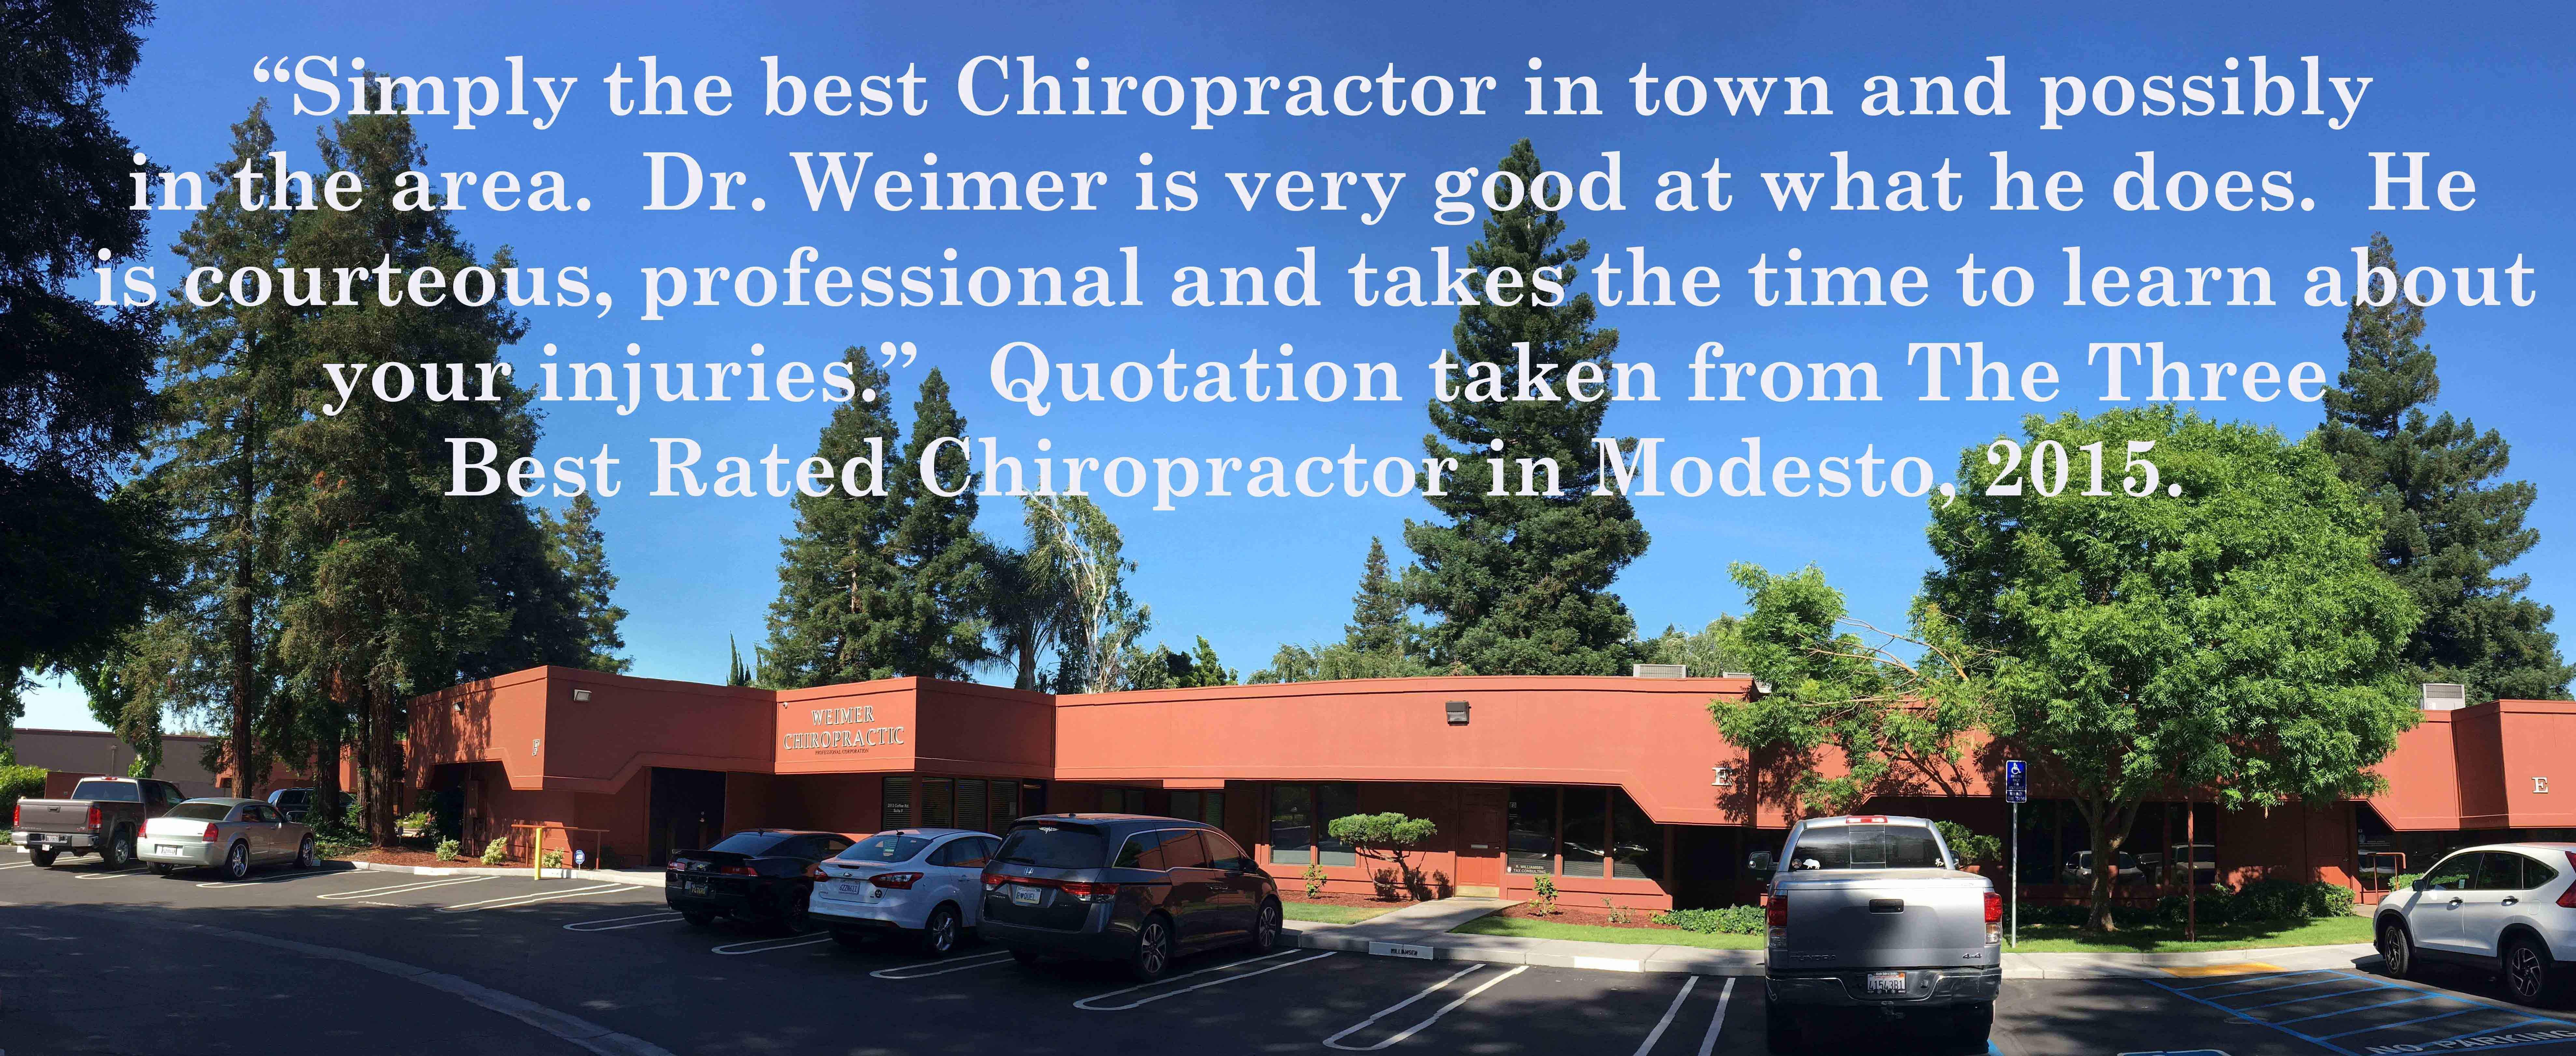 Dr, Weimer is the best Chiropractor in town and possibly in this area. He takes the time to learn about your injuries.